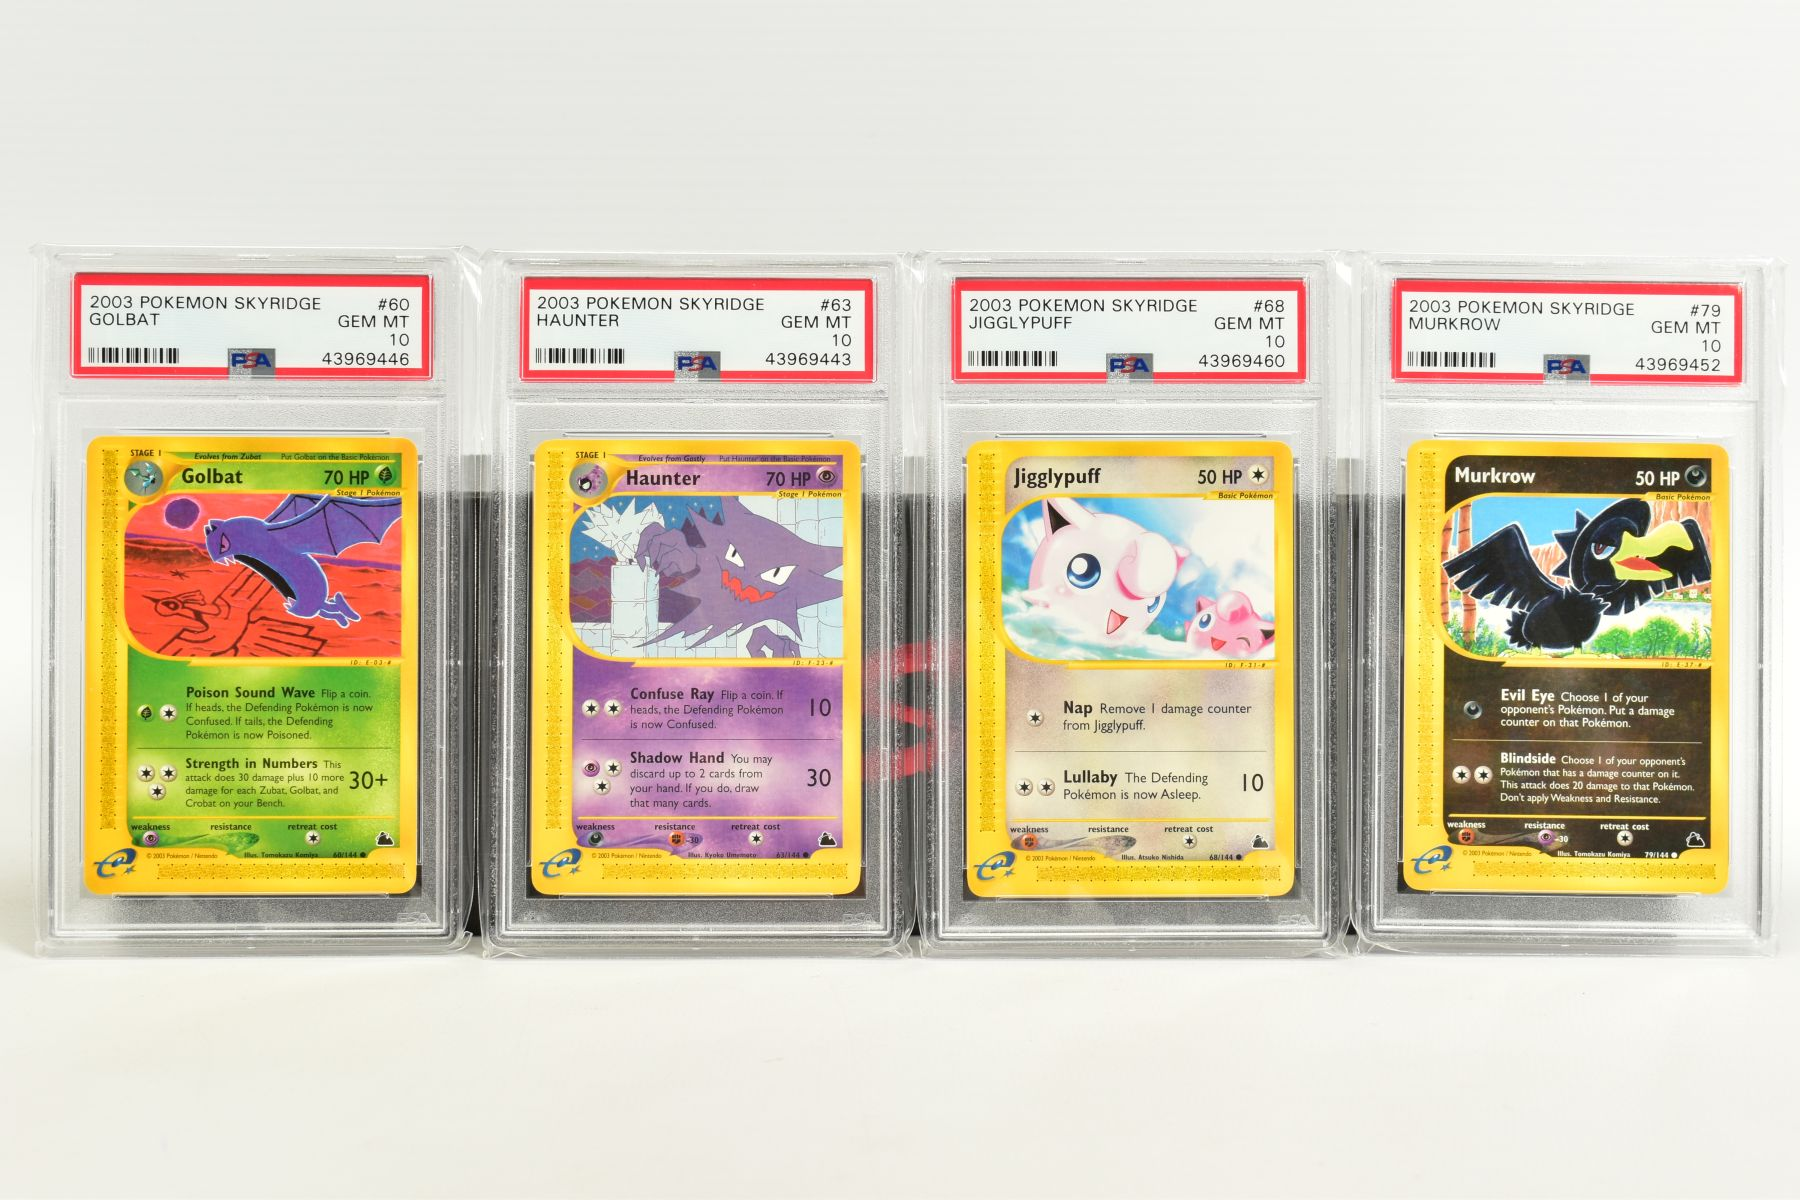 A QUANTITY OF PSA GRADED POKEMON SKYRIDGE SET CARDS, all are graded GEM MINT 10 and are sealed in - Image 4 of 9